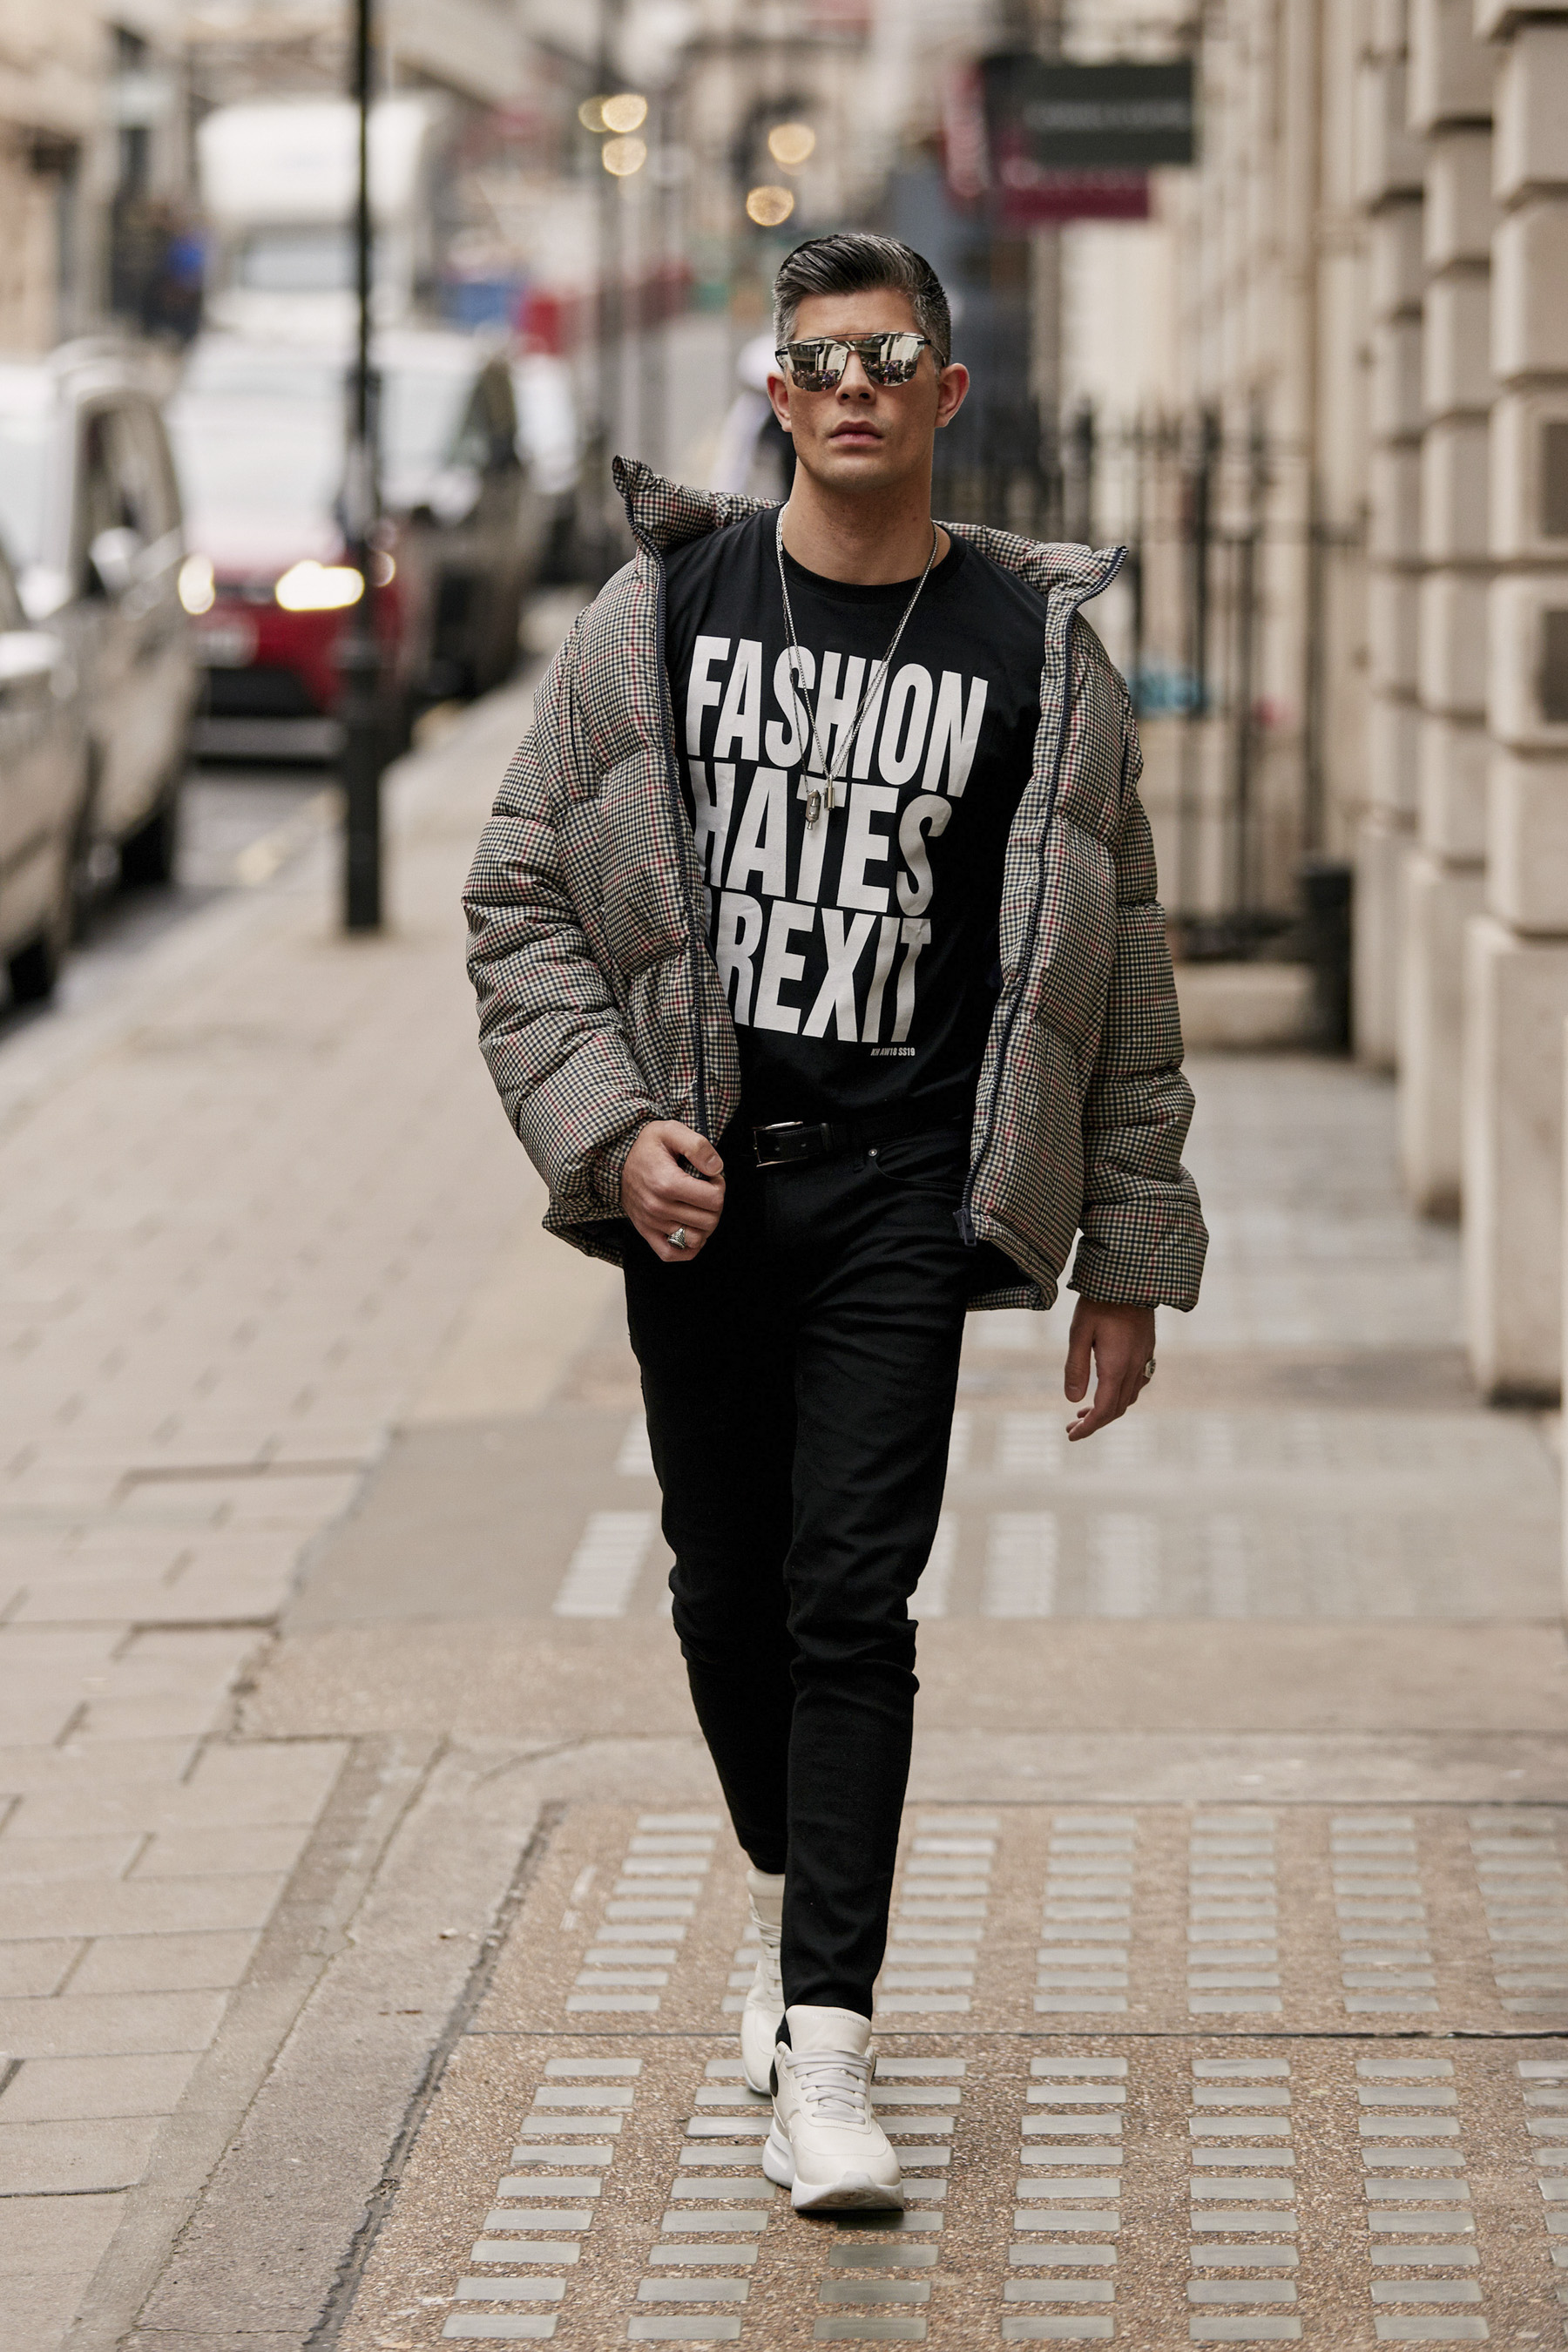 London Street Day 2 Bis Fall 2019 Fashion Show